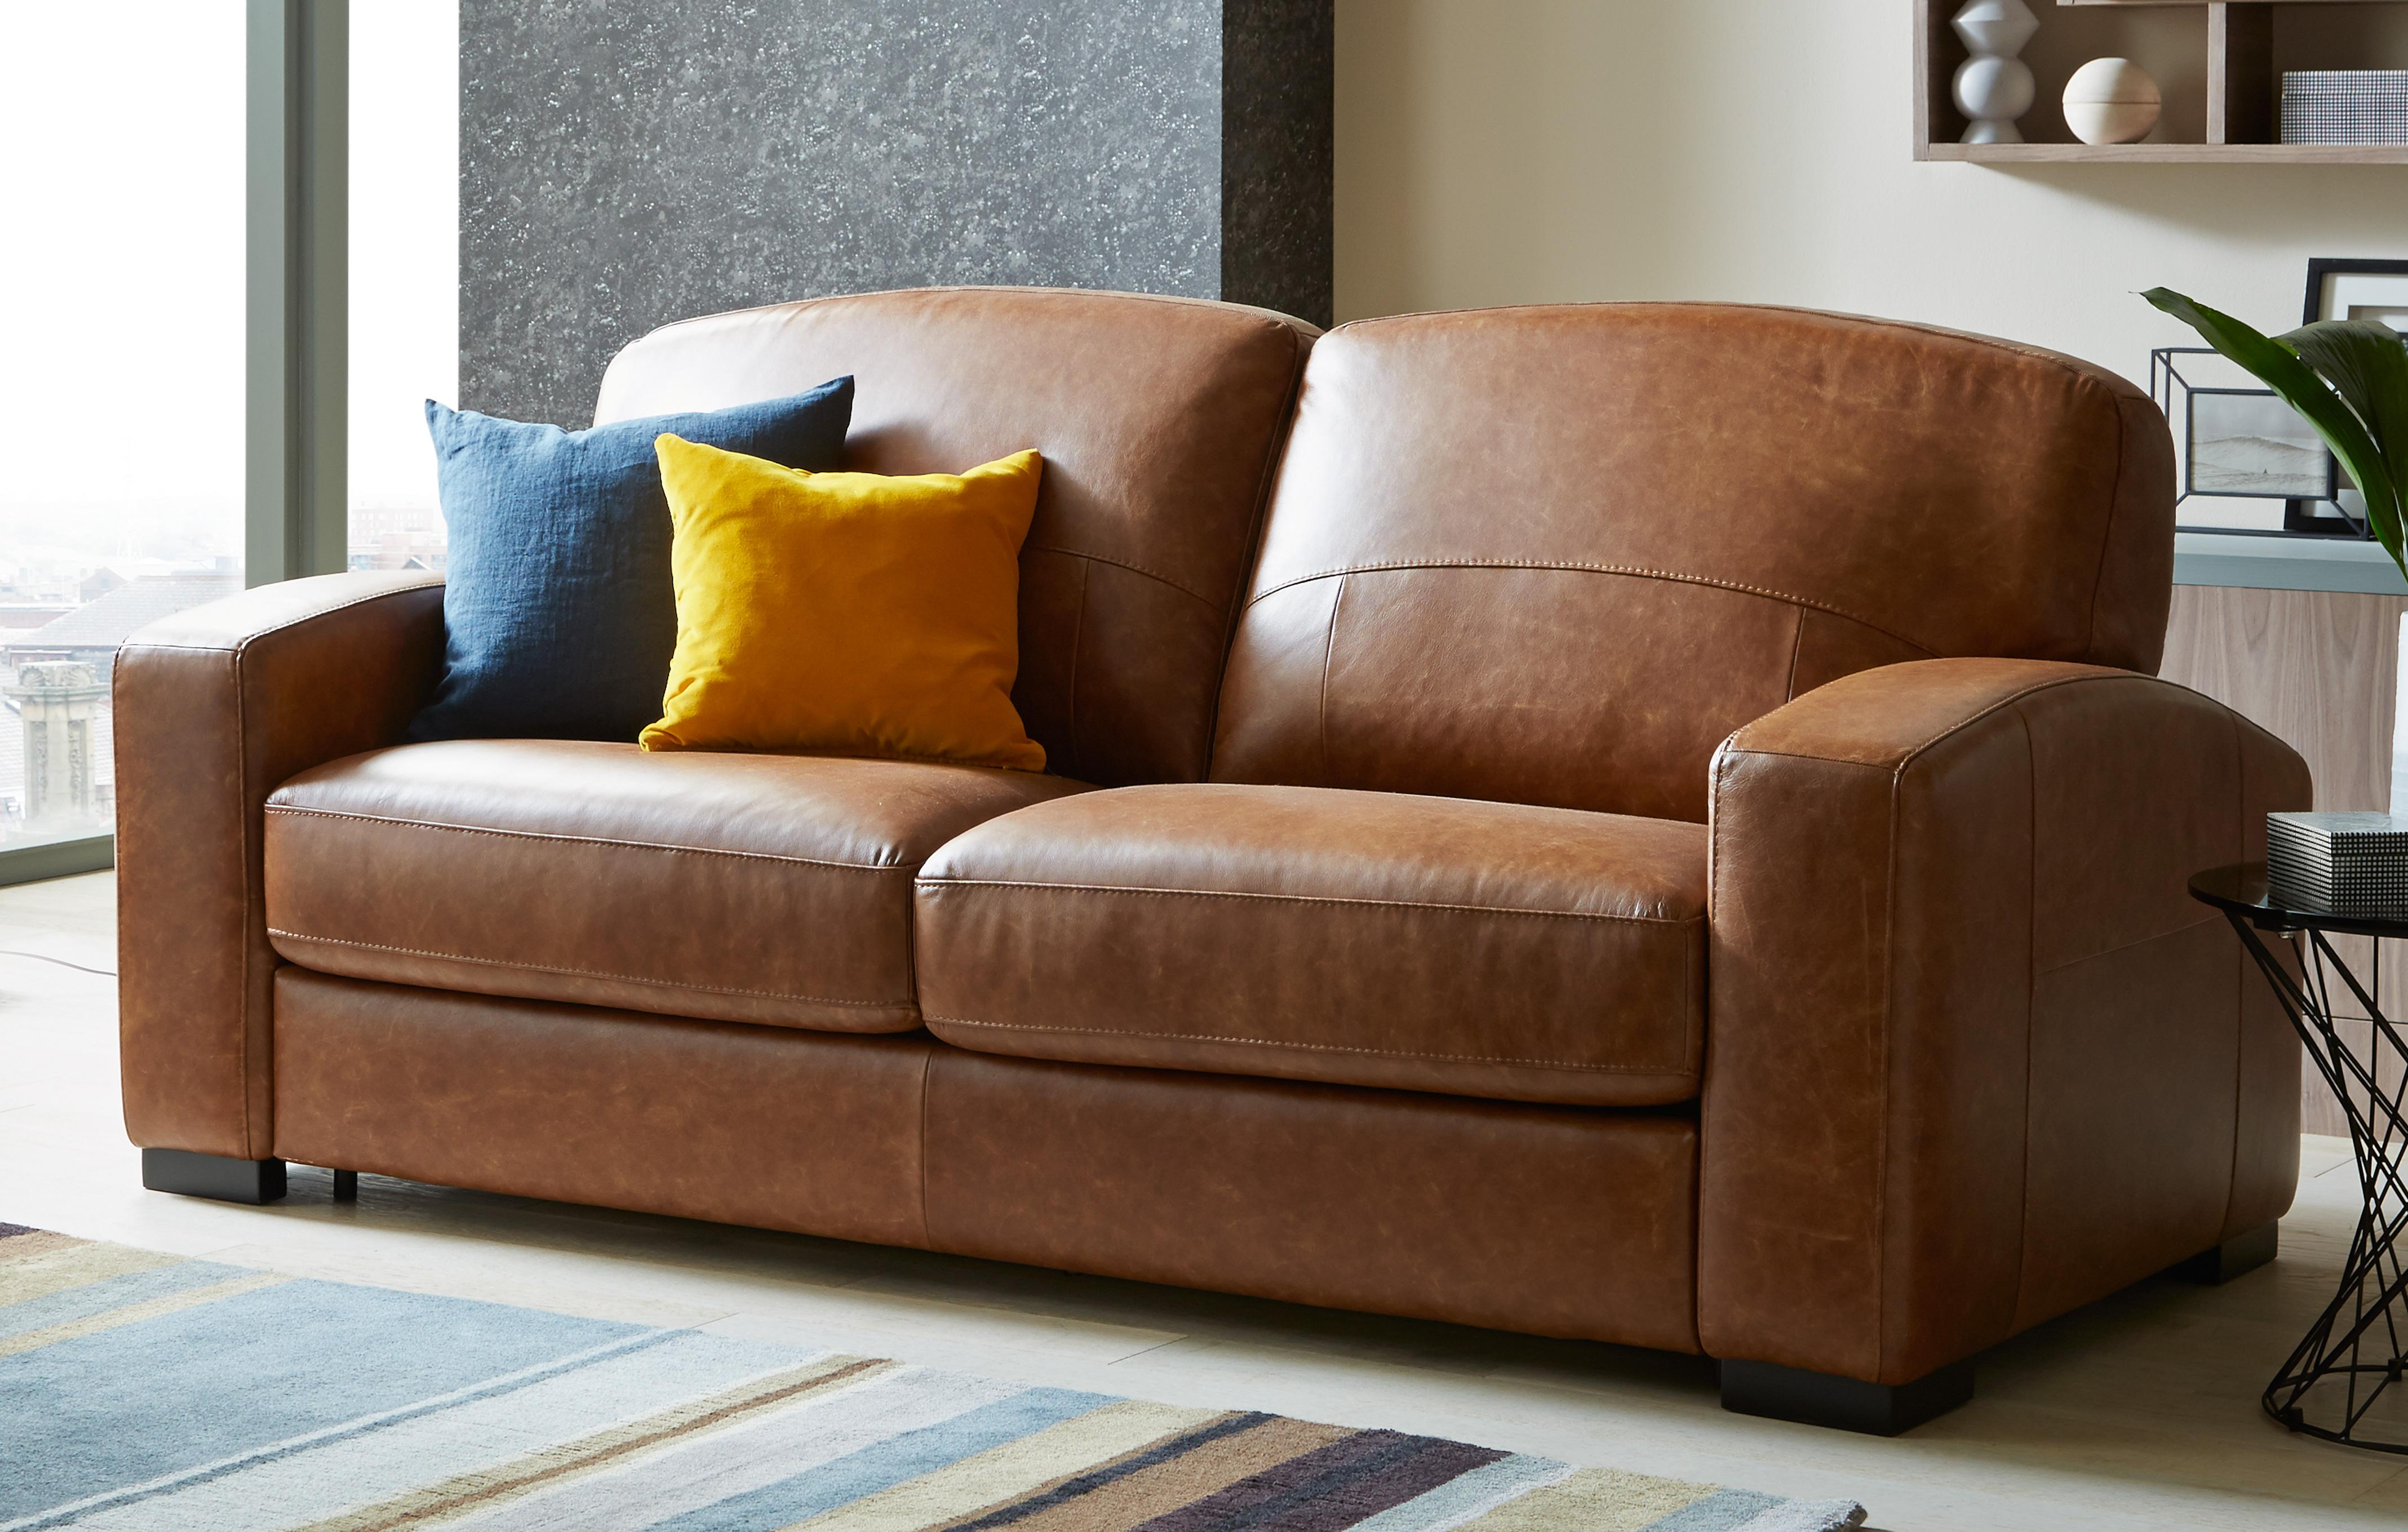 quality leather sofa beds slipcover material dfs ireland brokeasshome